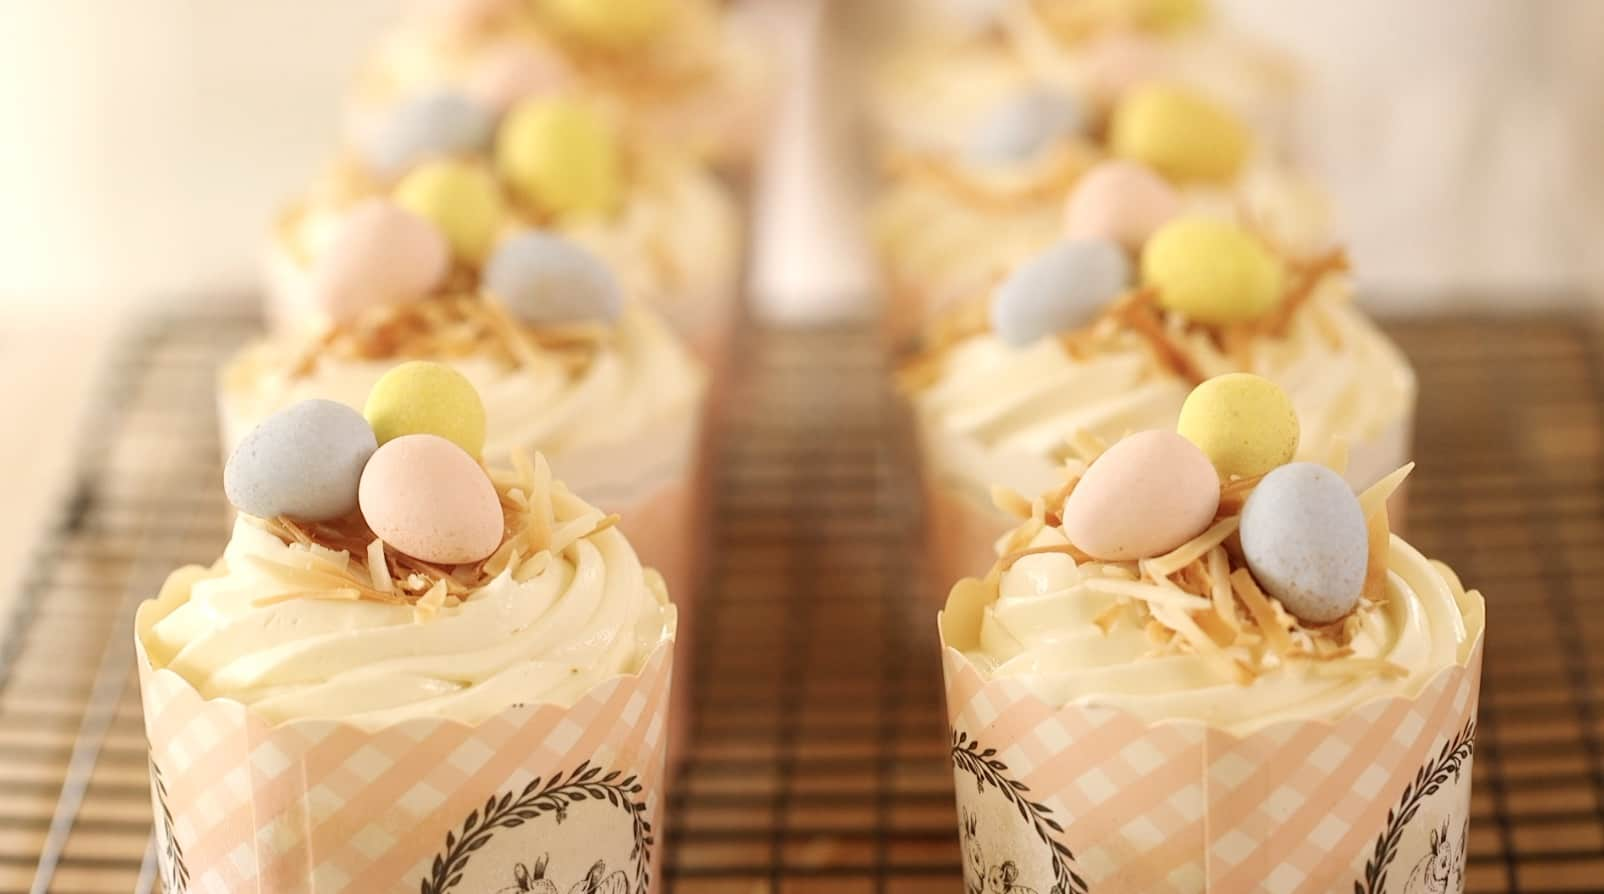 A row of Easter Cupcakes